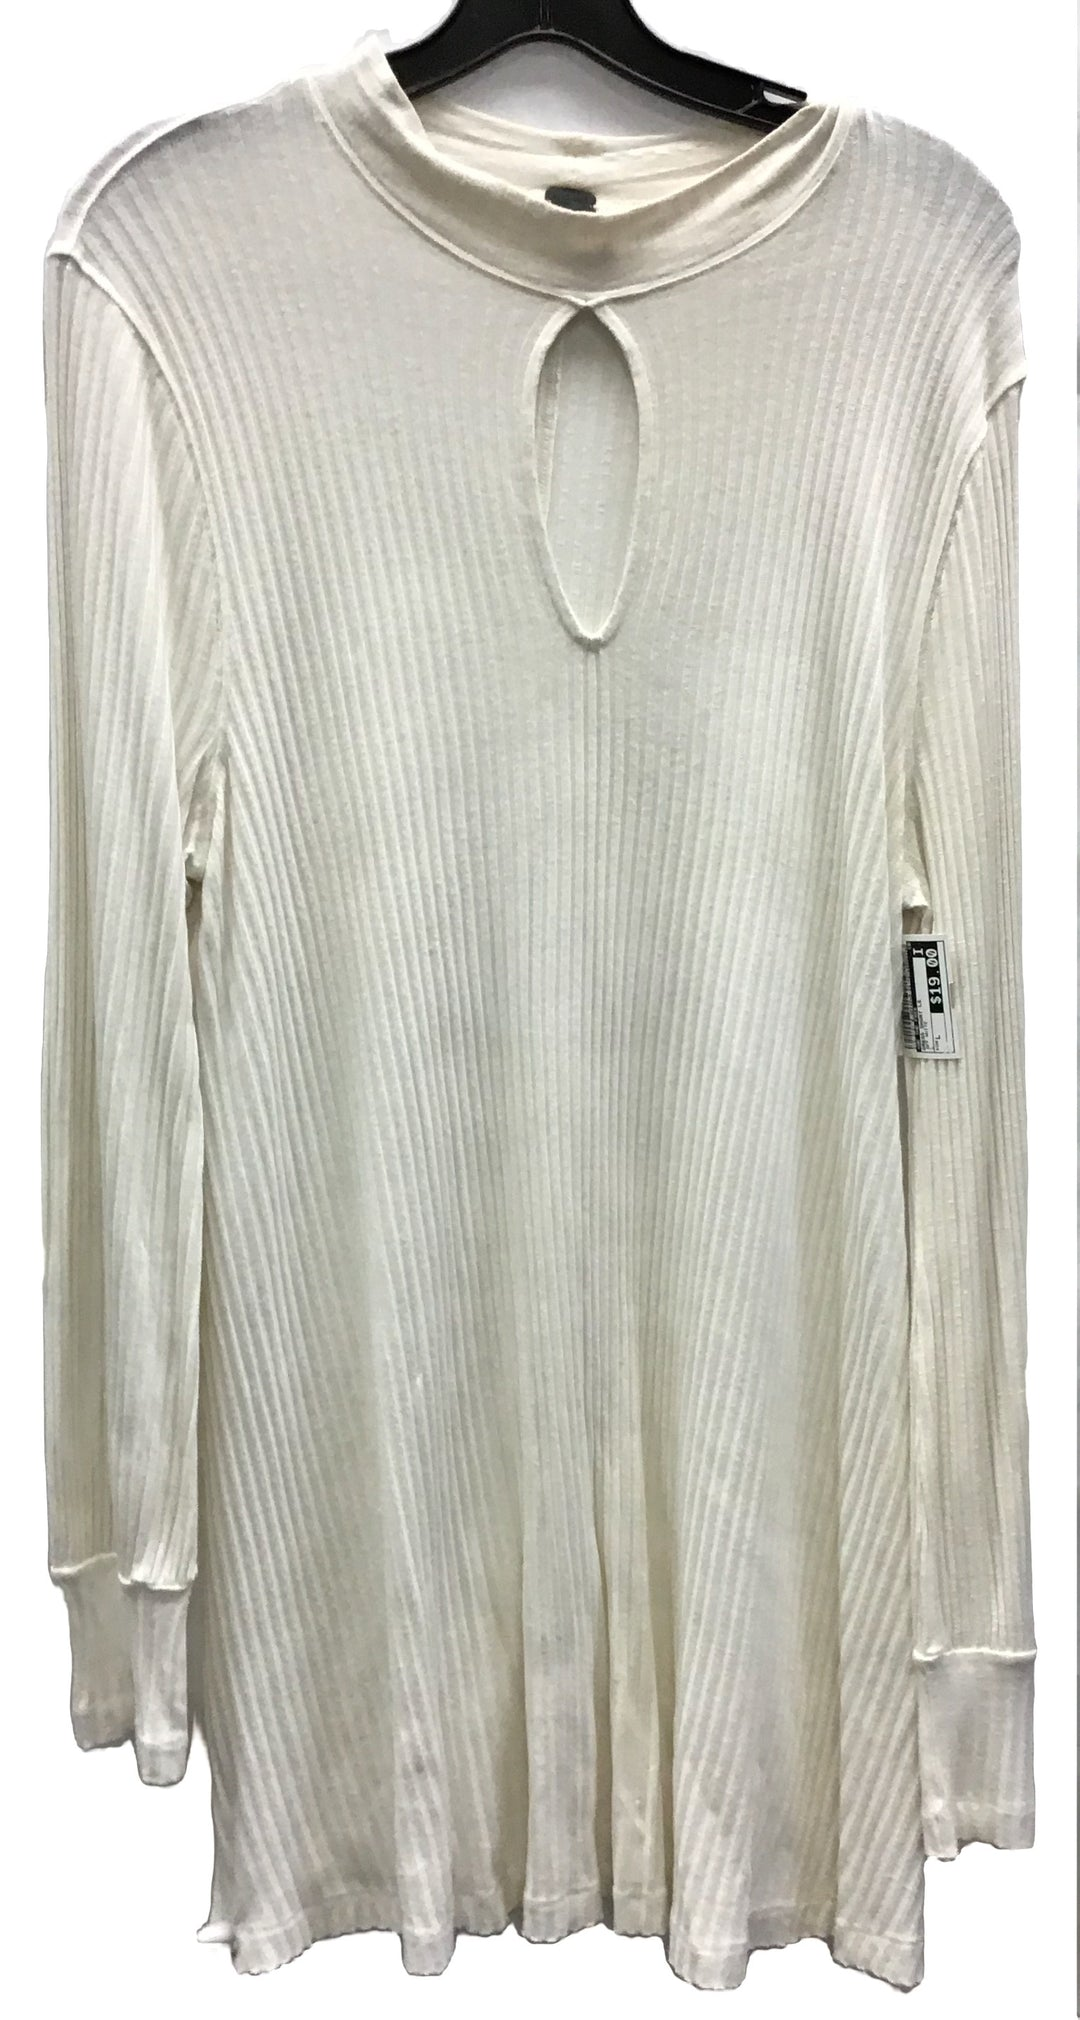 Primary Photo - BRAND: WE THE FREE <BR>STYLE: DRESS SHORT LONG SLEEVE <BR>COLOR: OFF WHITE <BR>SIZE: L <BR>SKU: 213-213118-30449